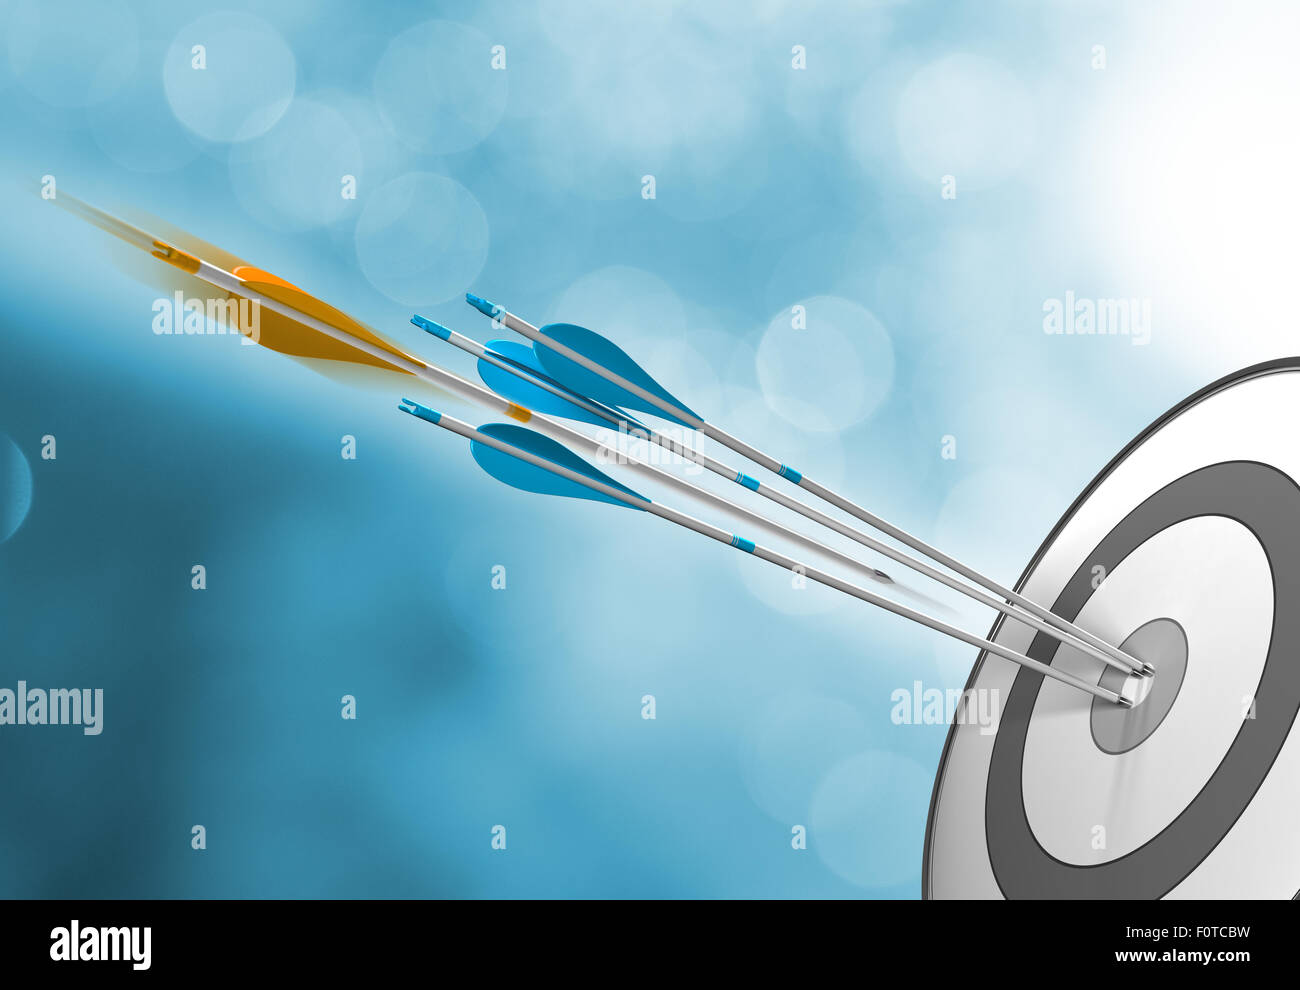 Three blue arrows hitting target center plus an orange one in motion about to hit the bullseye. Concept image for - Stock Image